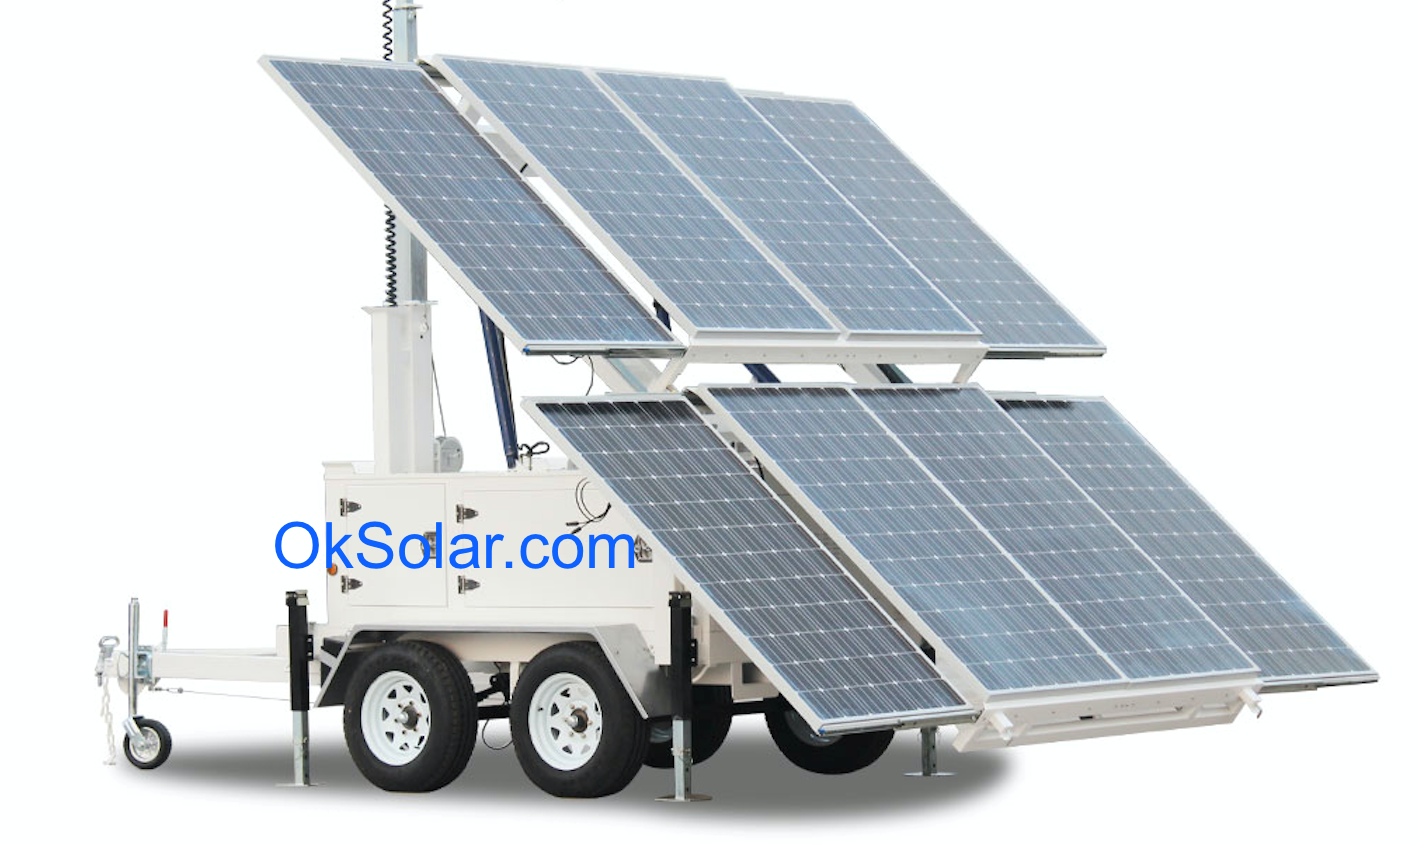 OkSolar.com Solar Portable Supply Trailer Mounted